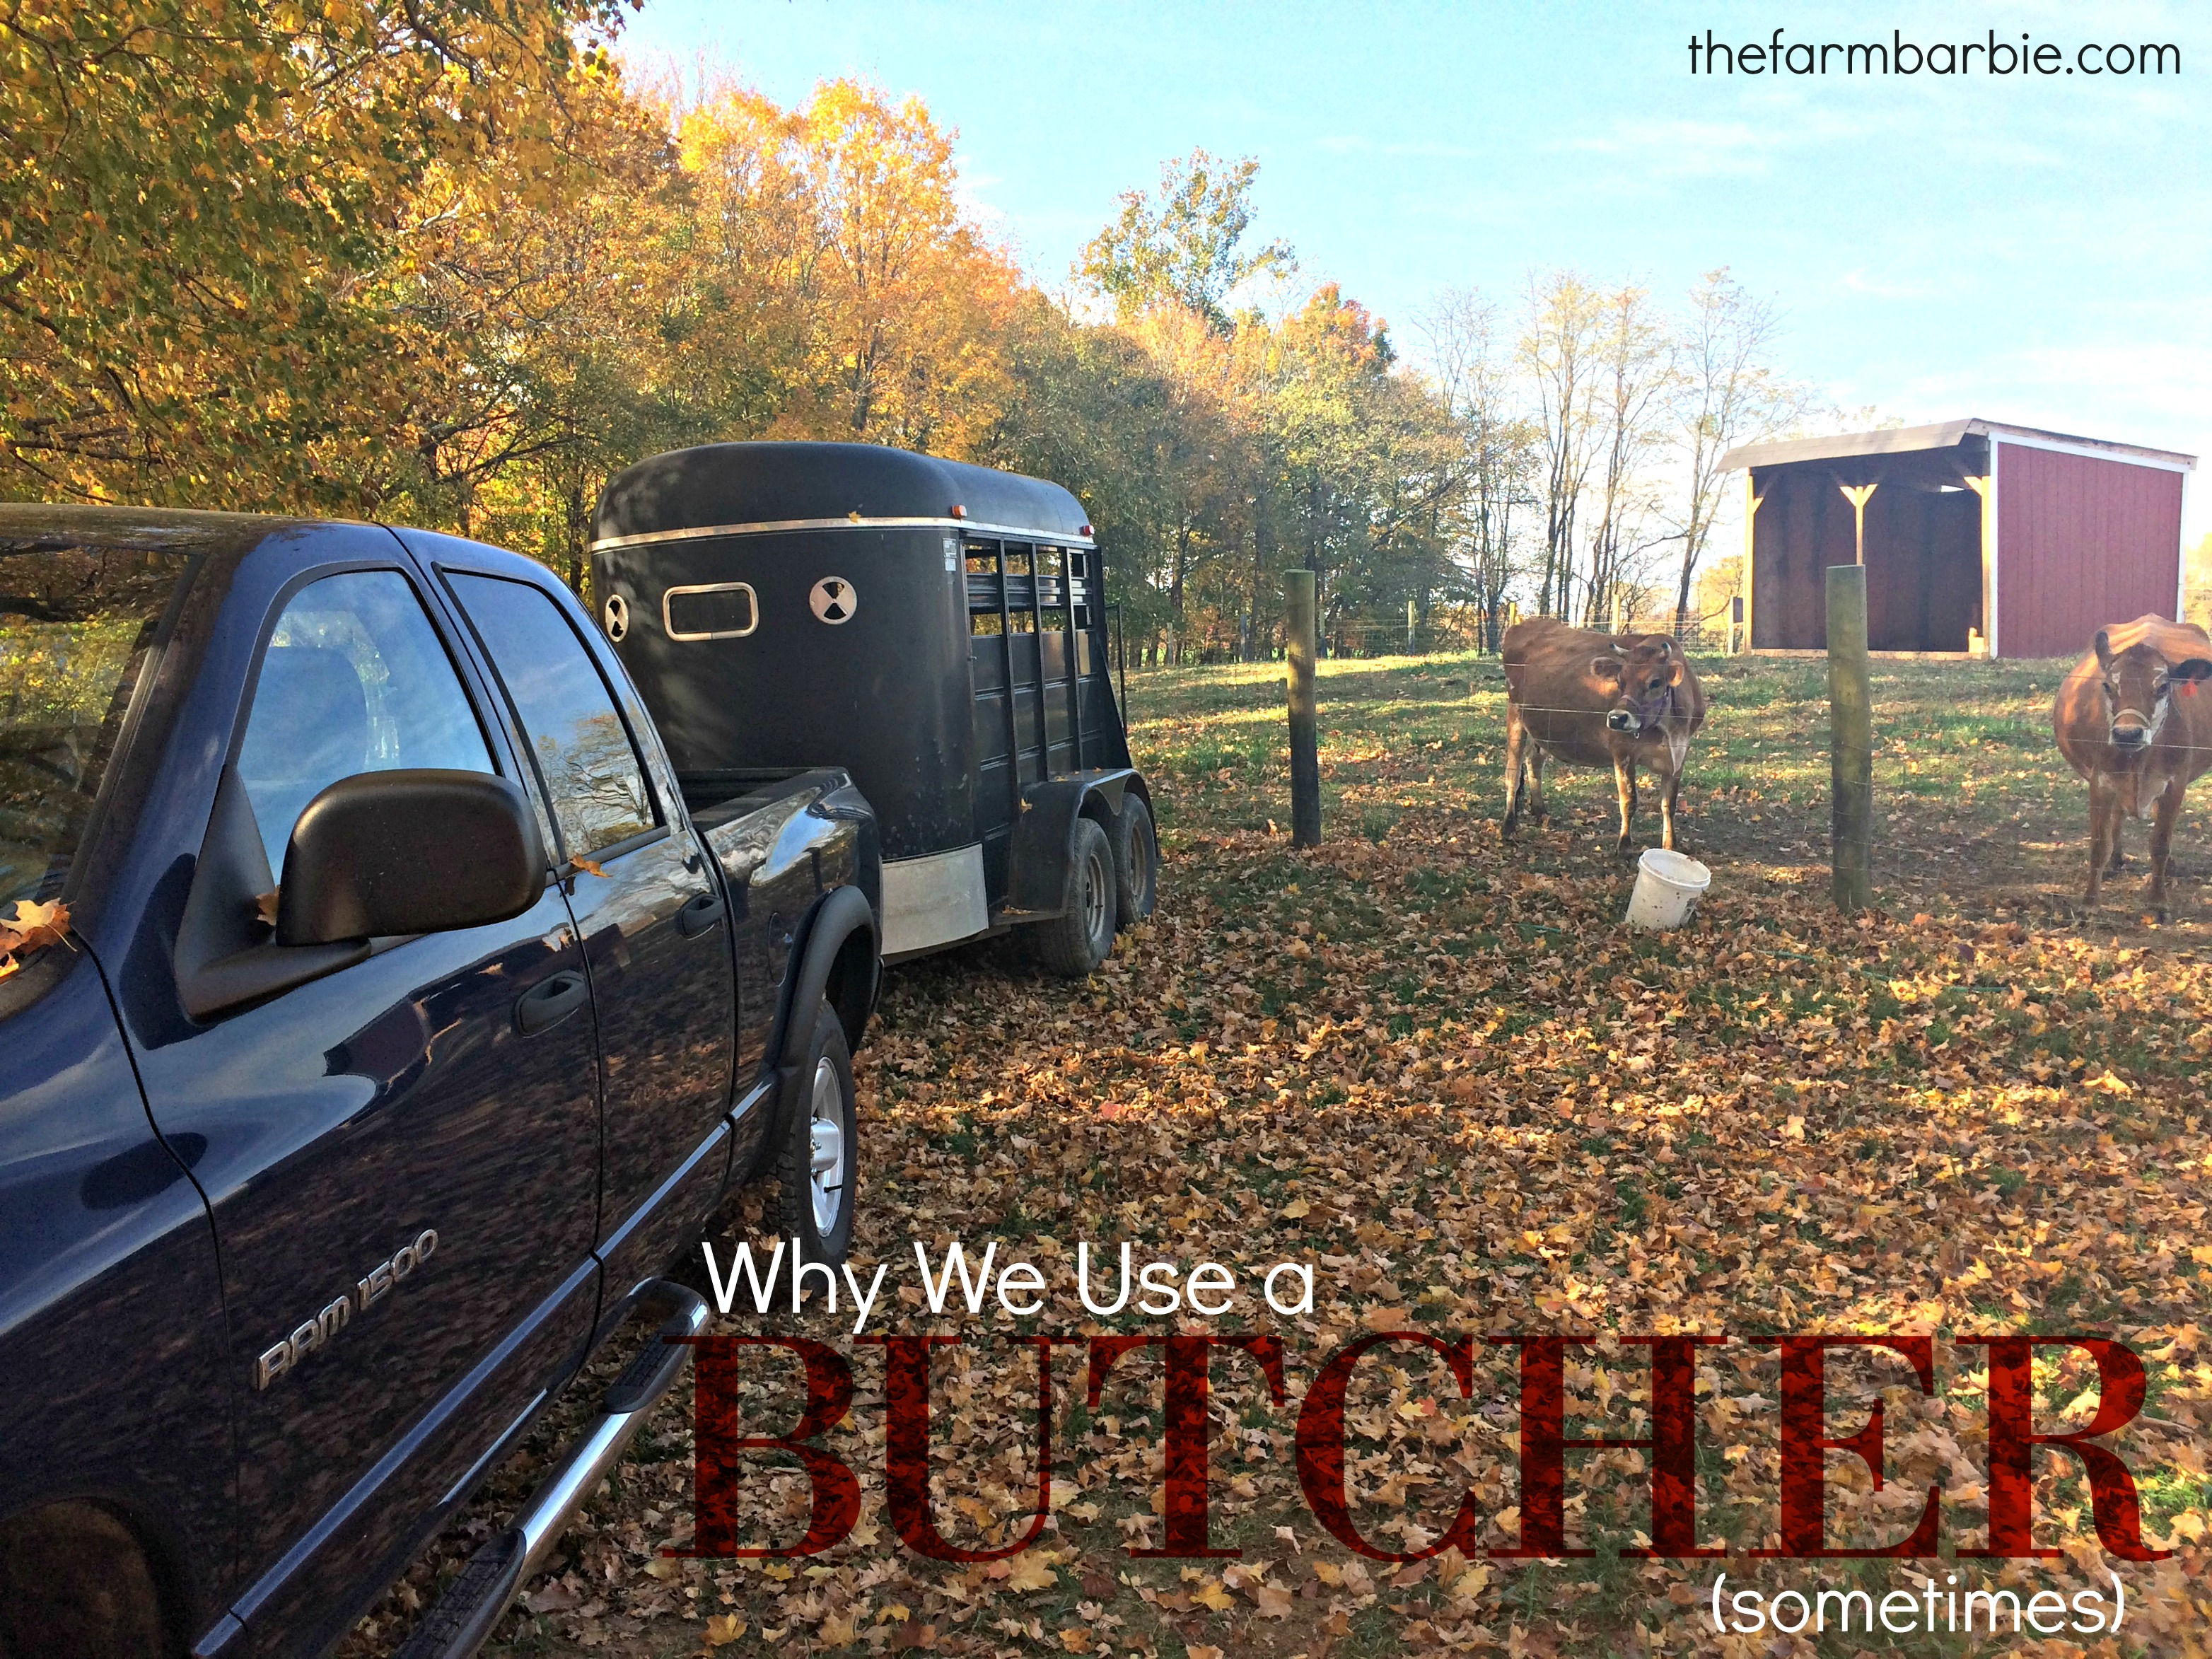 Why We use a Butcher (sometimes)